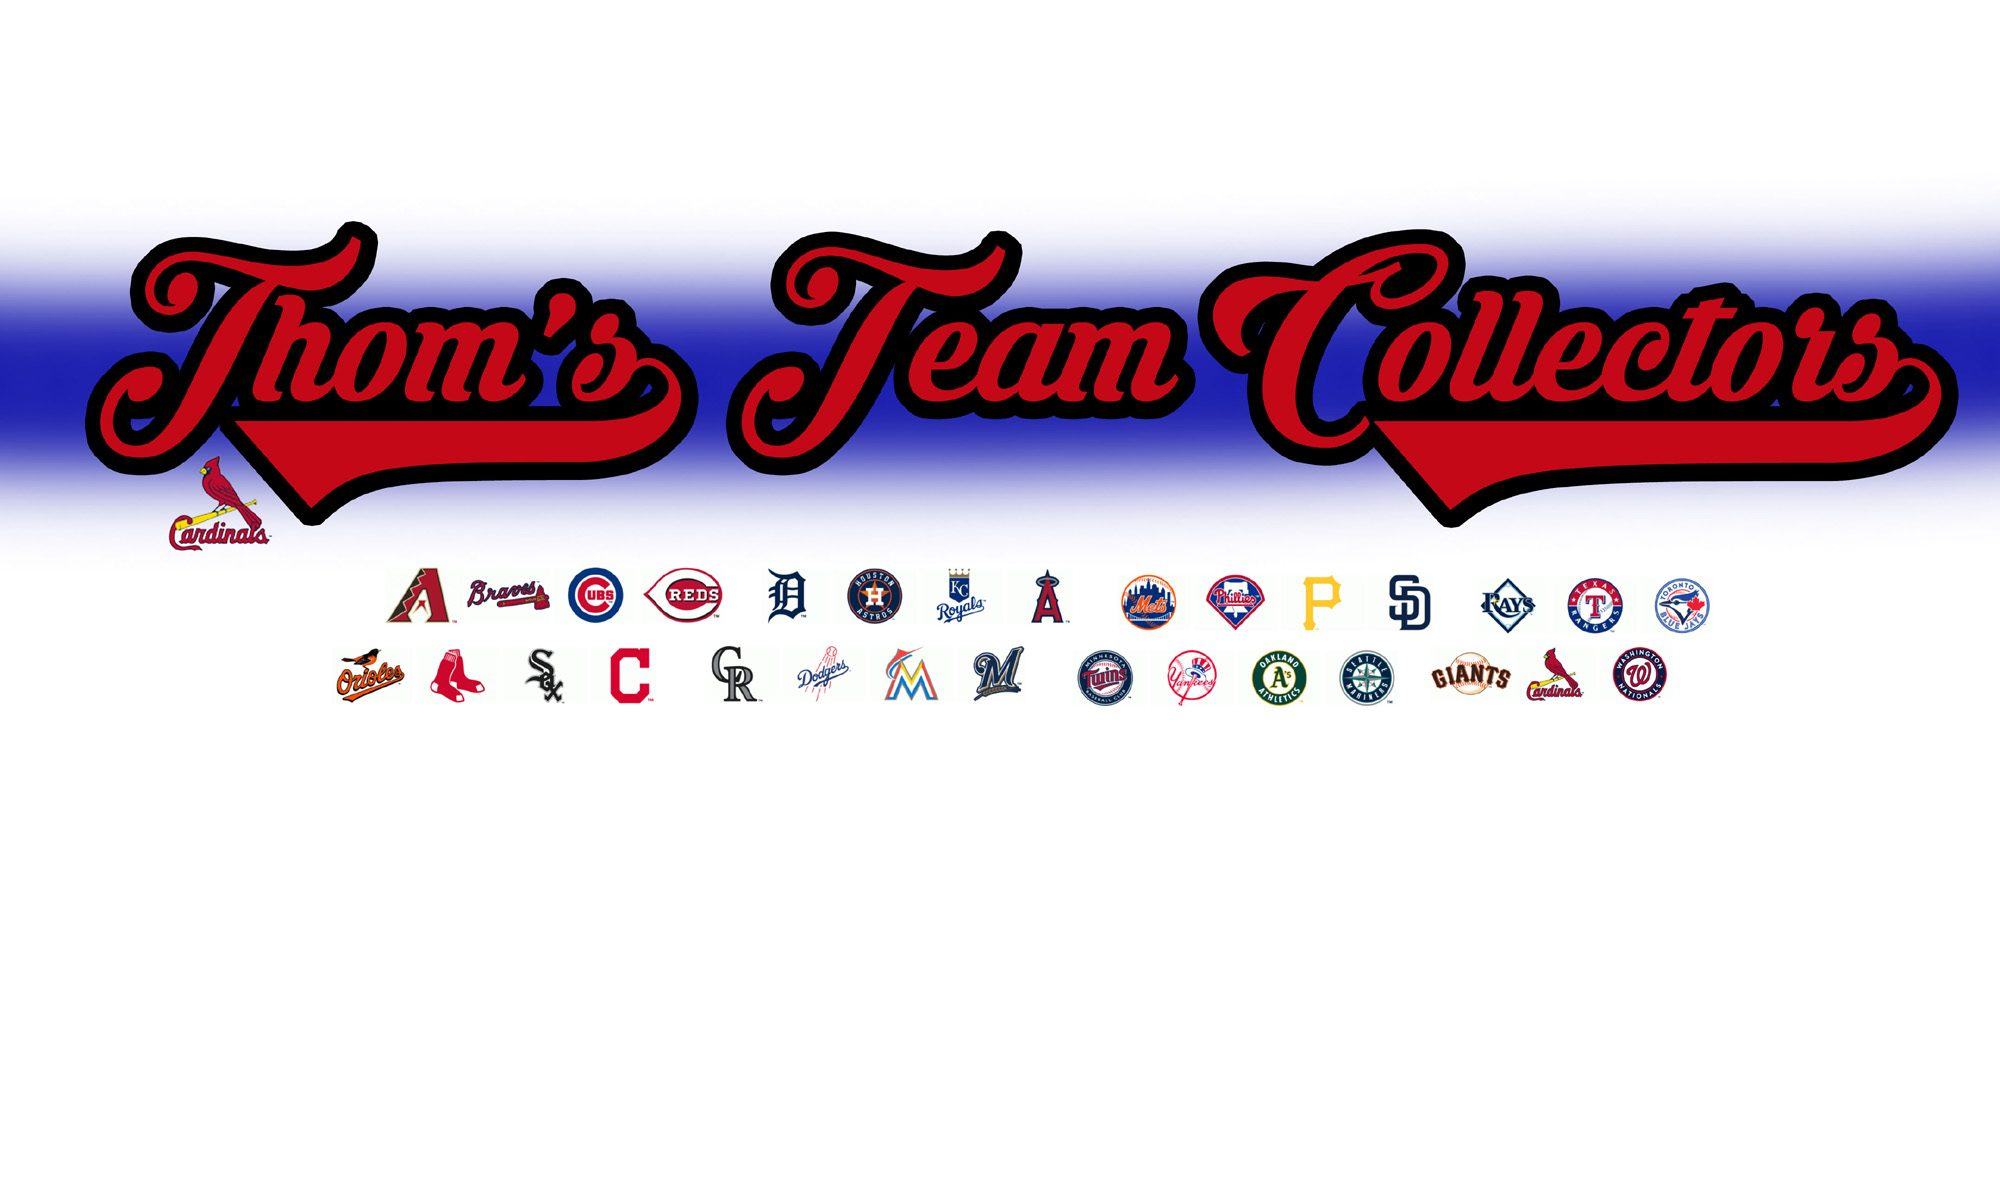 The Team Collectors